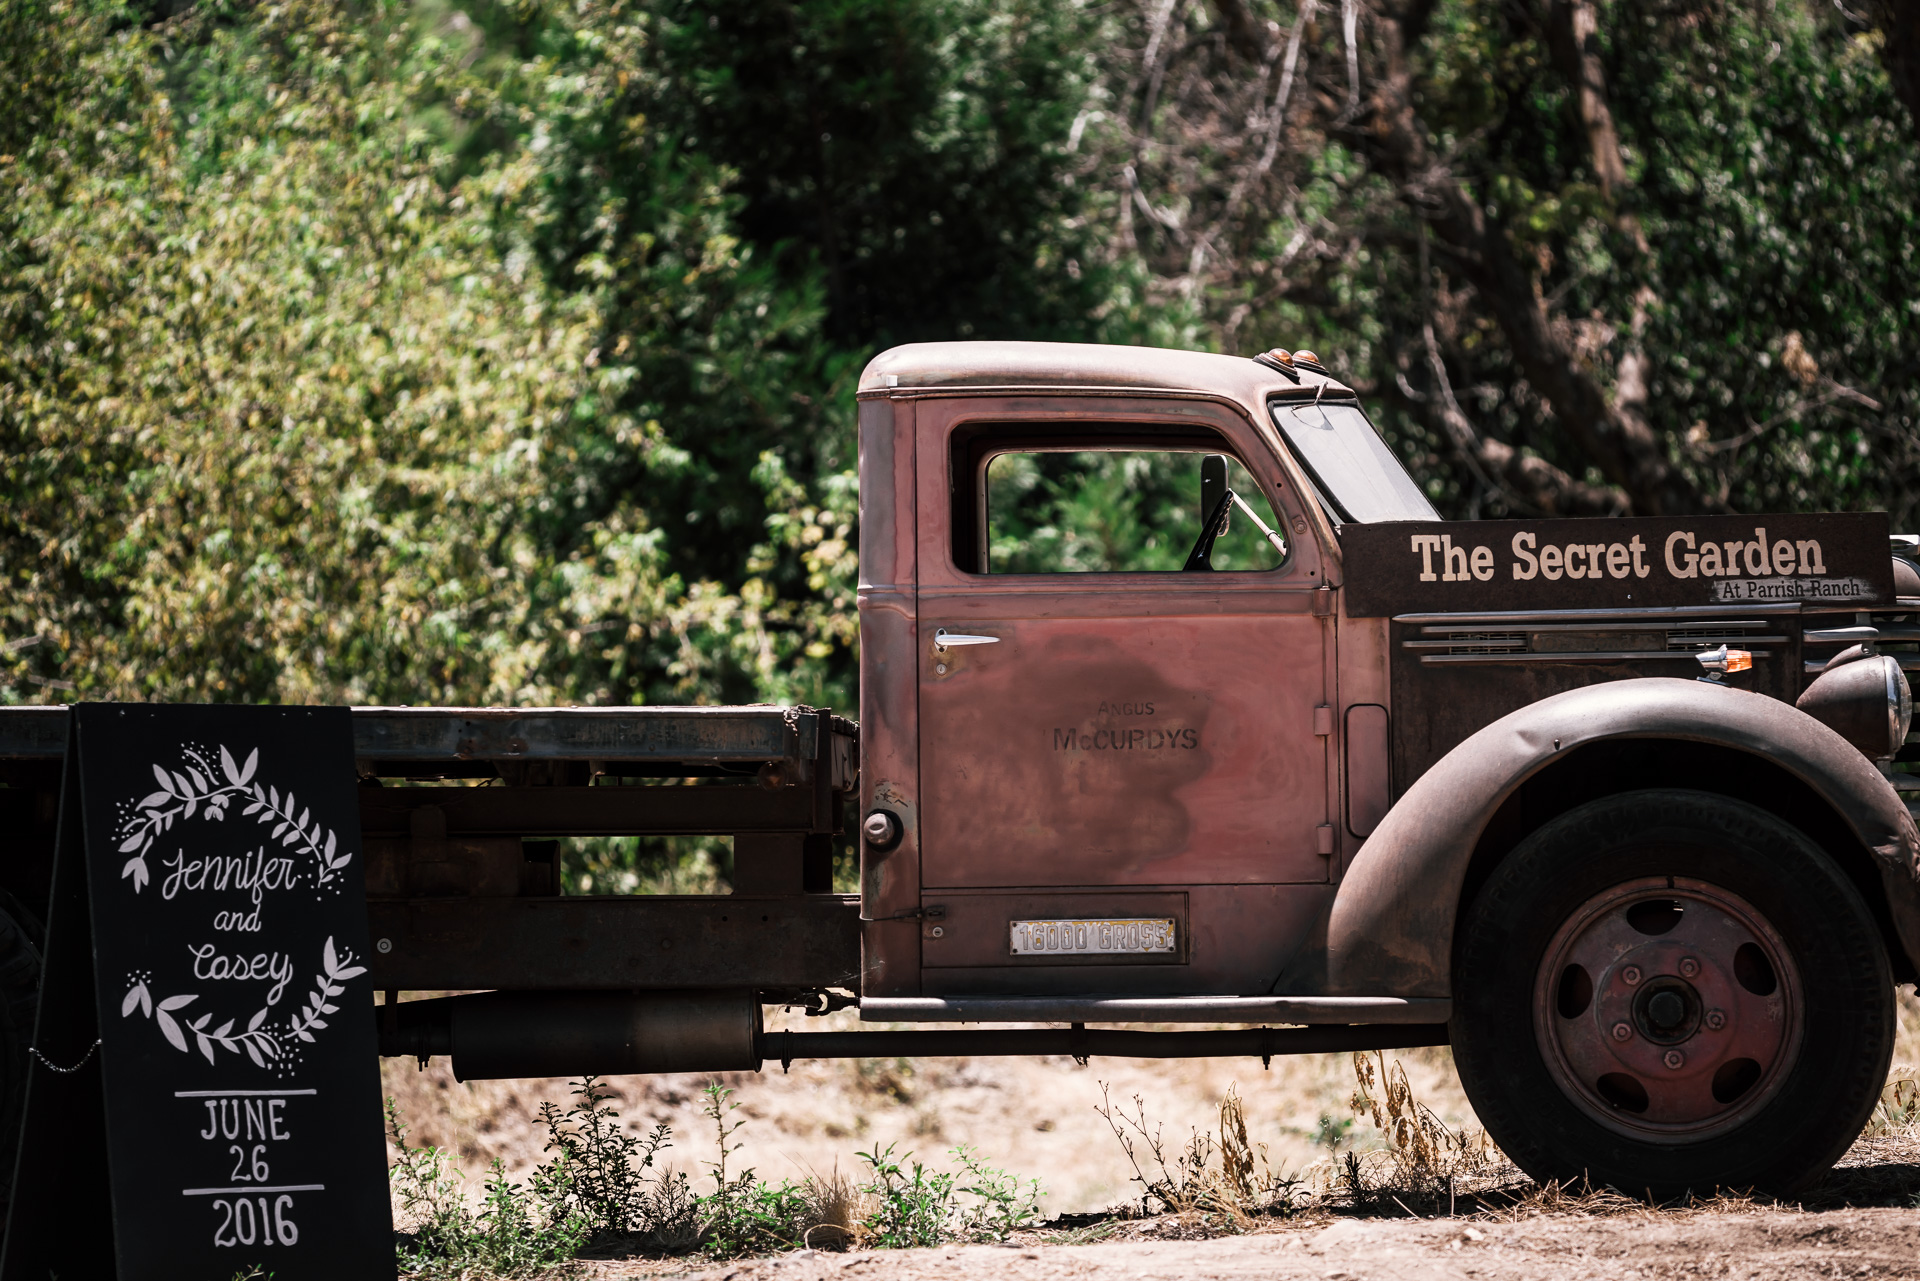 rustic vintage farm truck at the secret garden located at the Historic Parish ranch in Oak Glen California